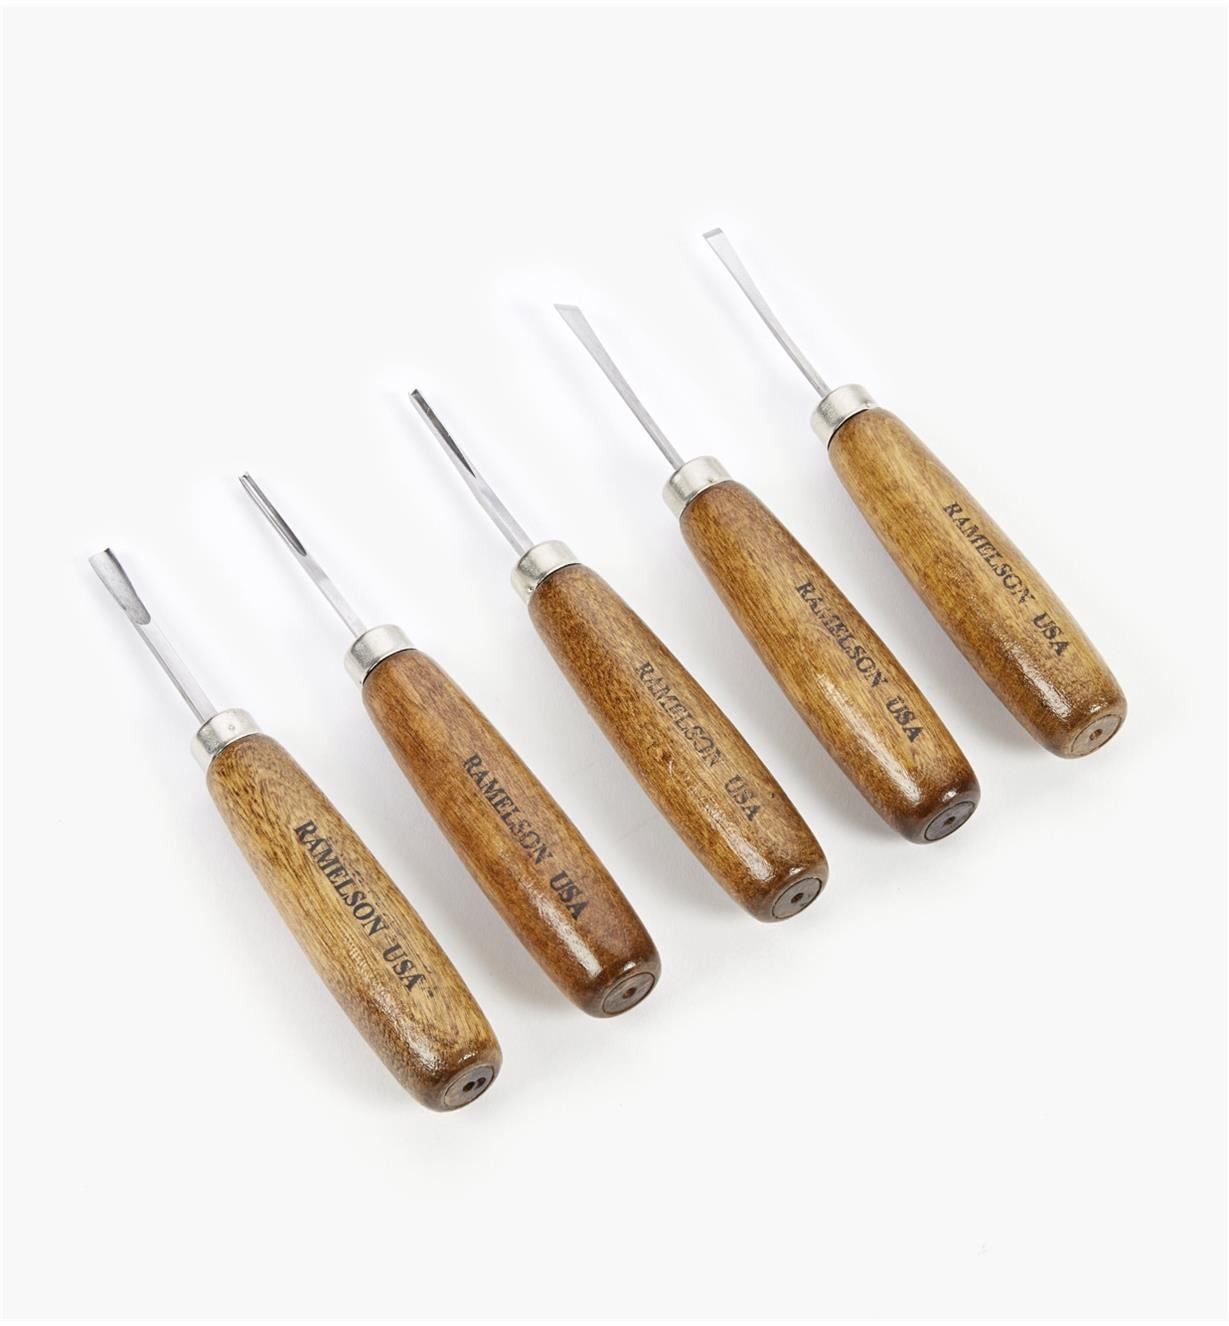 57D0411 - Set of 5 Long-Handle Detail Carving Tools